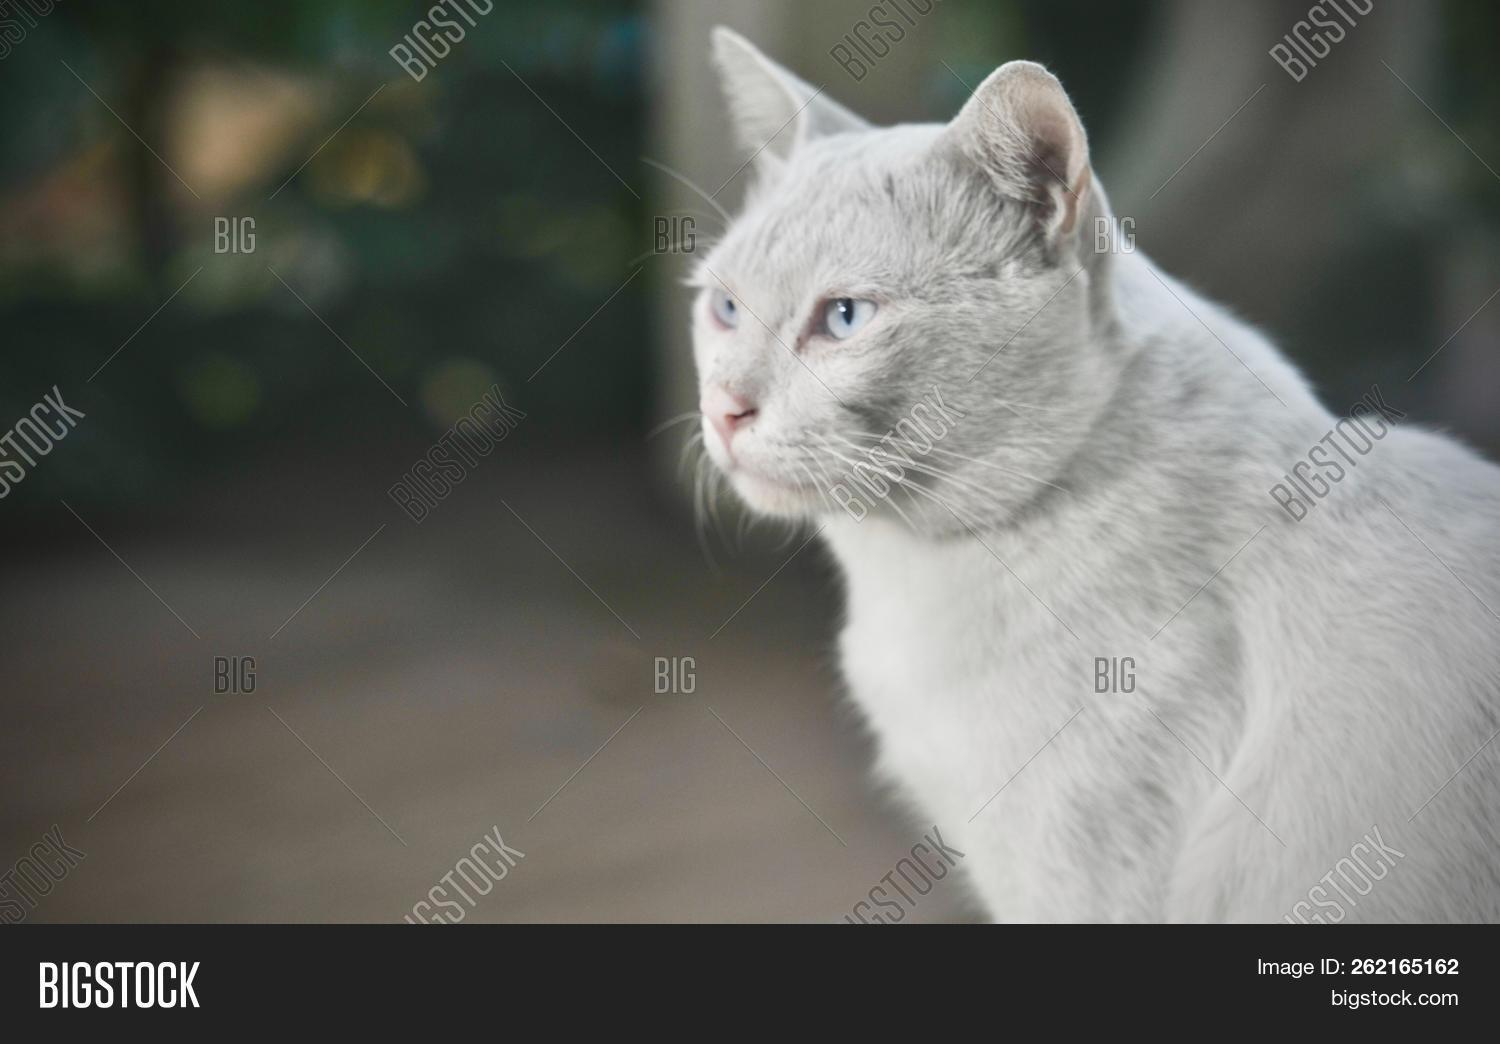 Siamese Cat Is The Thai Domestic Cat Ugly And Dirty Cat And Smart Pet In House White Cat Looking U Image Stock Photo 262165162